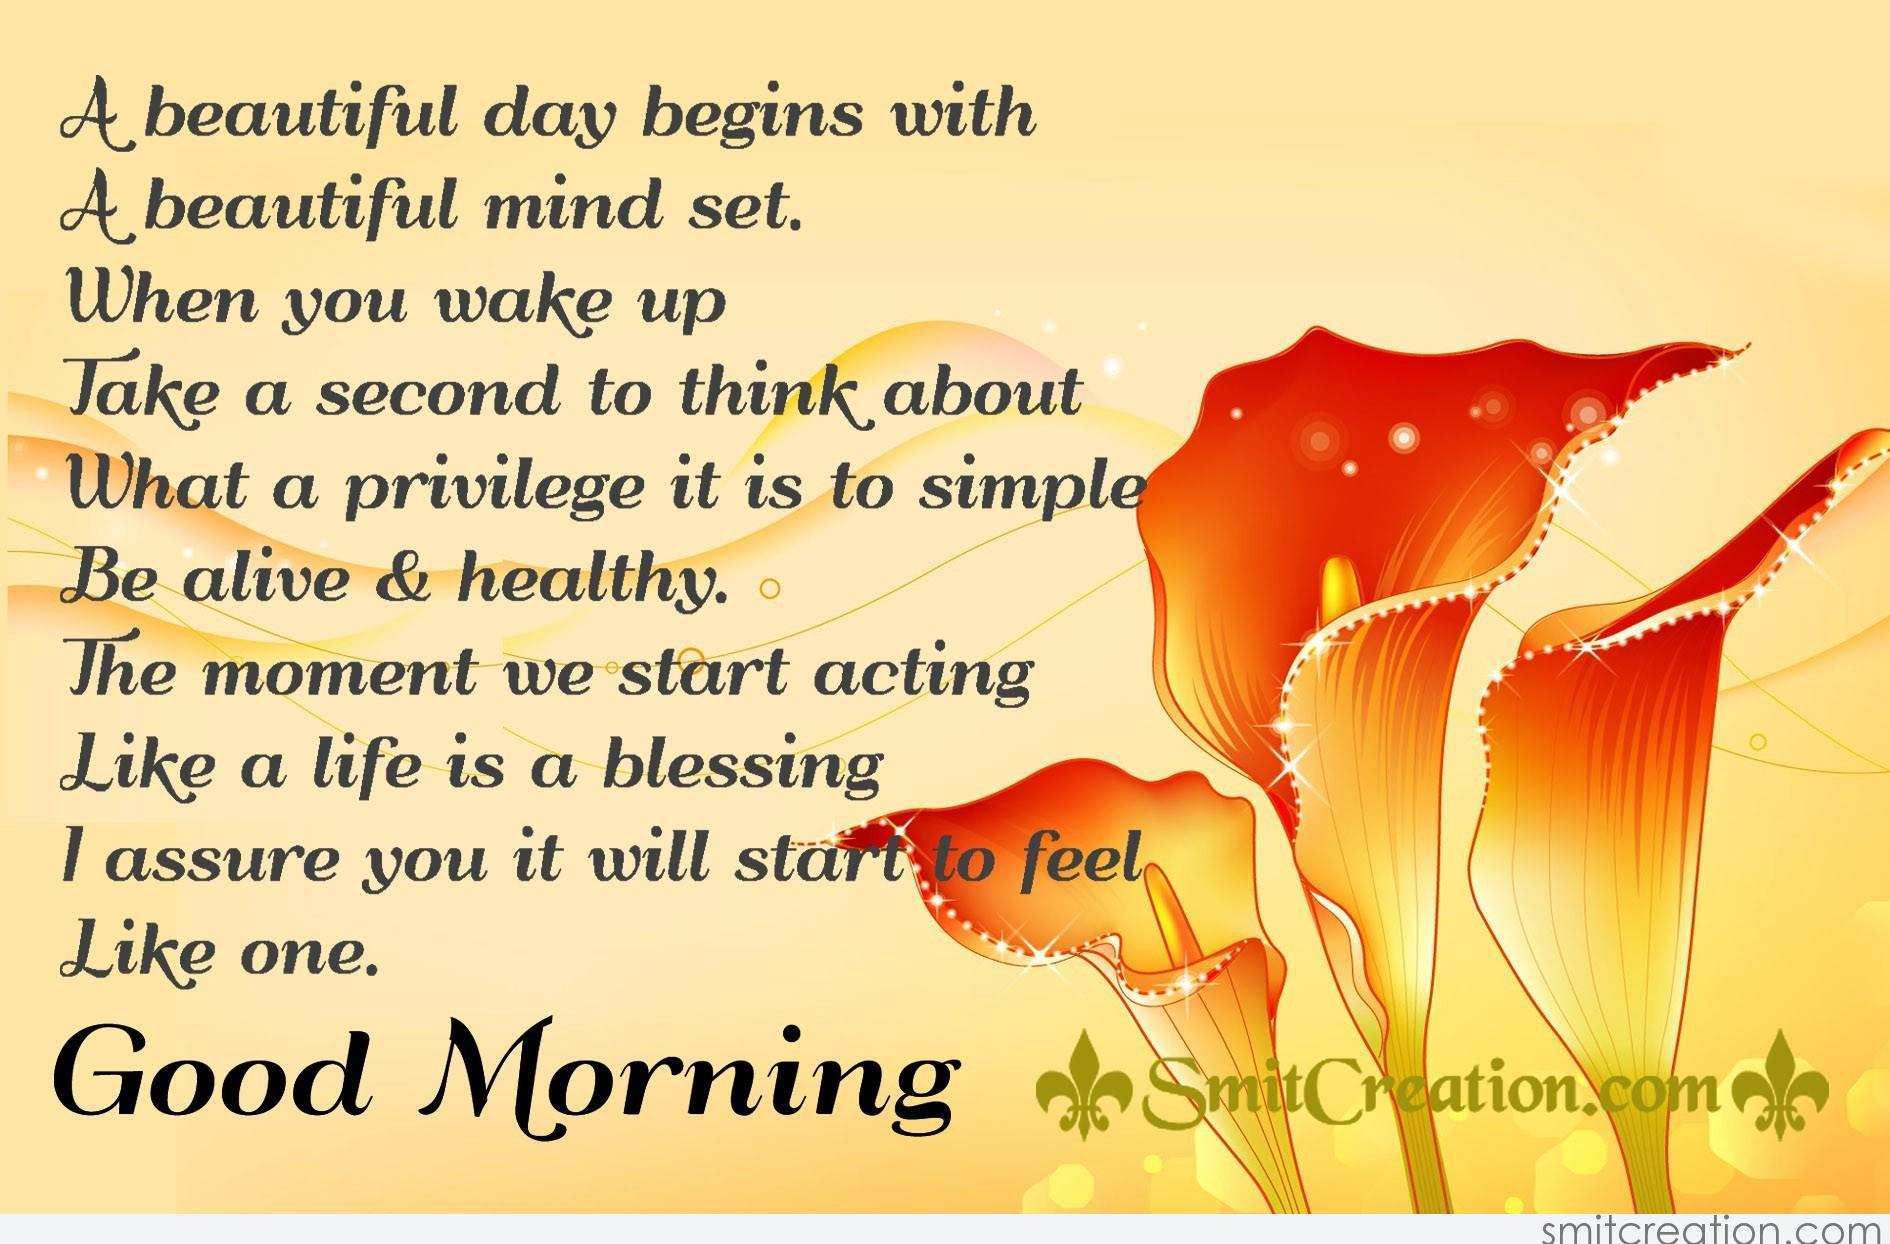 Good Morning Inspirational Quotes Pictures And Graphics